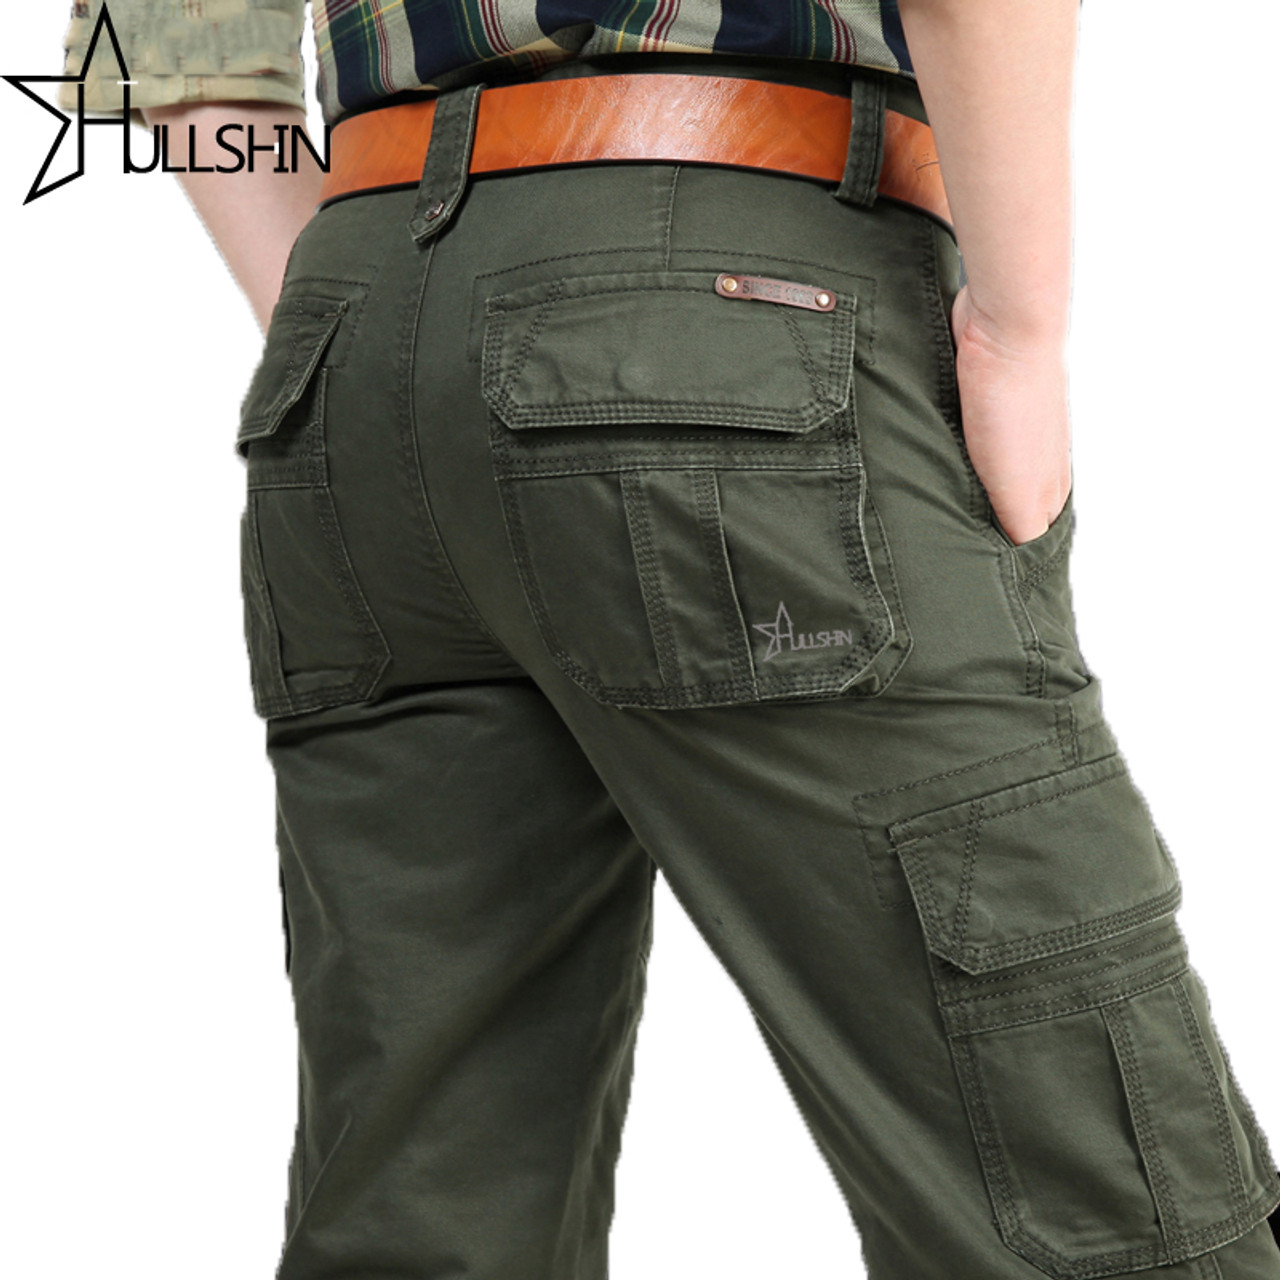 a962ad364a7 2018 Brand Mens fashion Military Cargo Pants Multi-pockets Baggy Men Pants  Casual Trousers Overalls ...